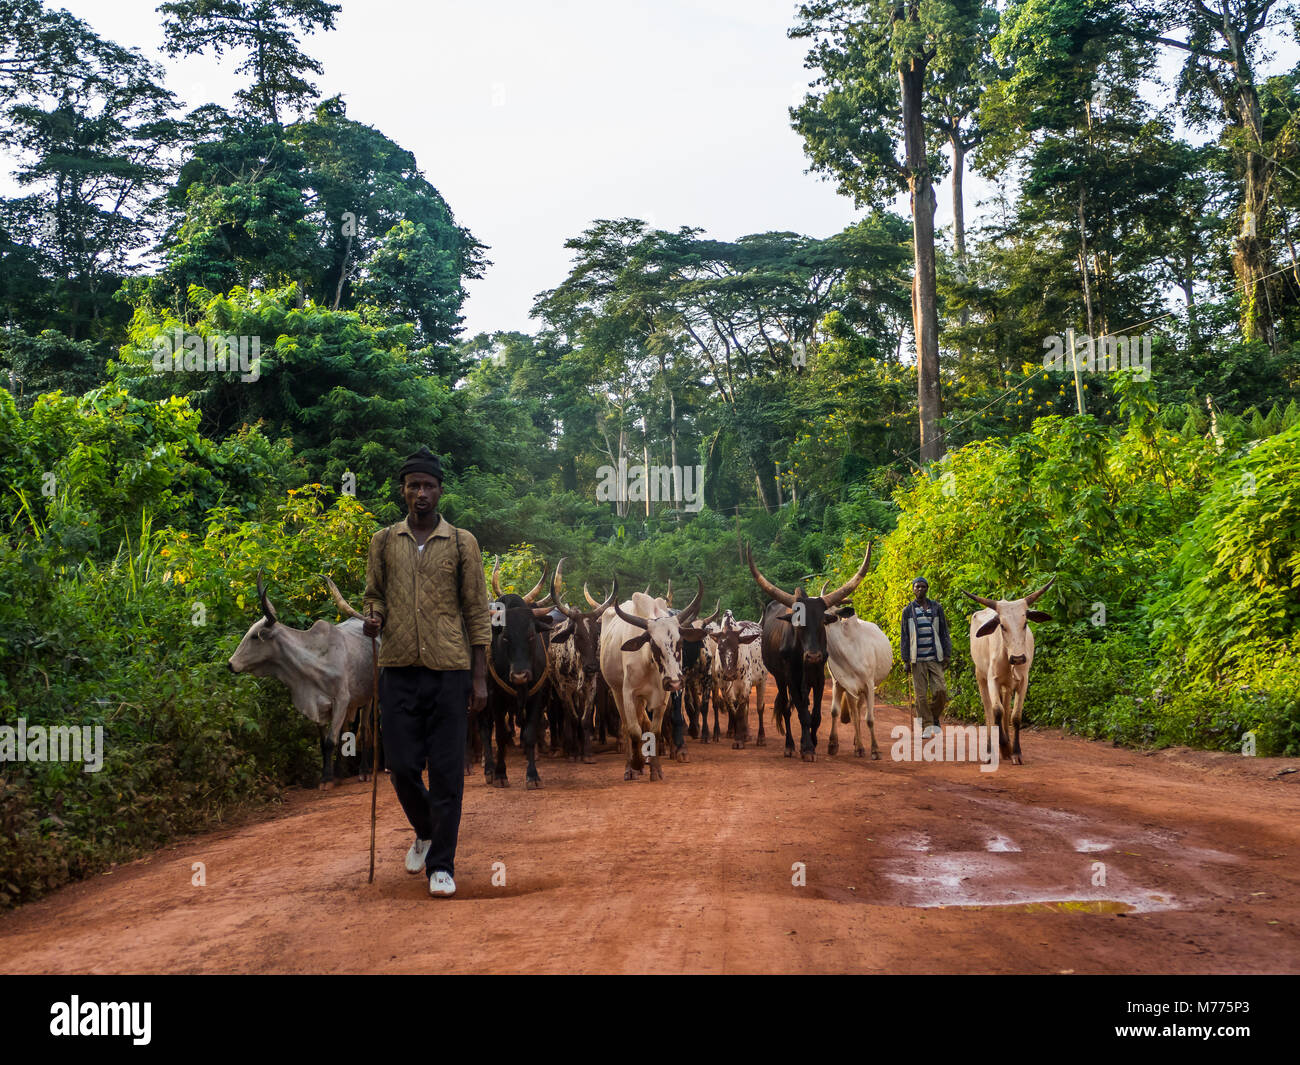 Local cow herd deep in the jungle, Cameroon, Africa - Stock Image